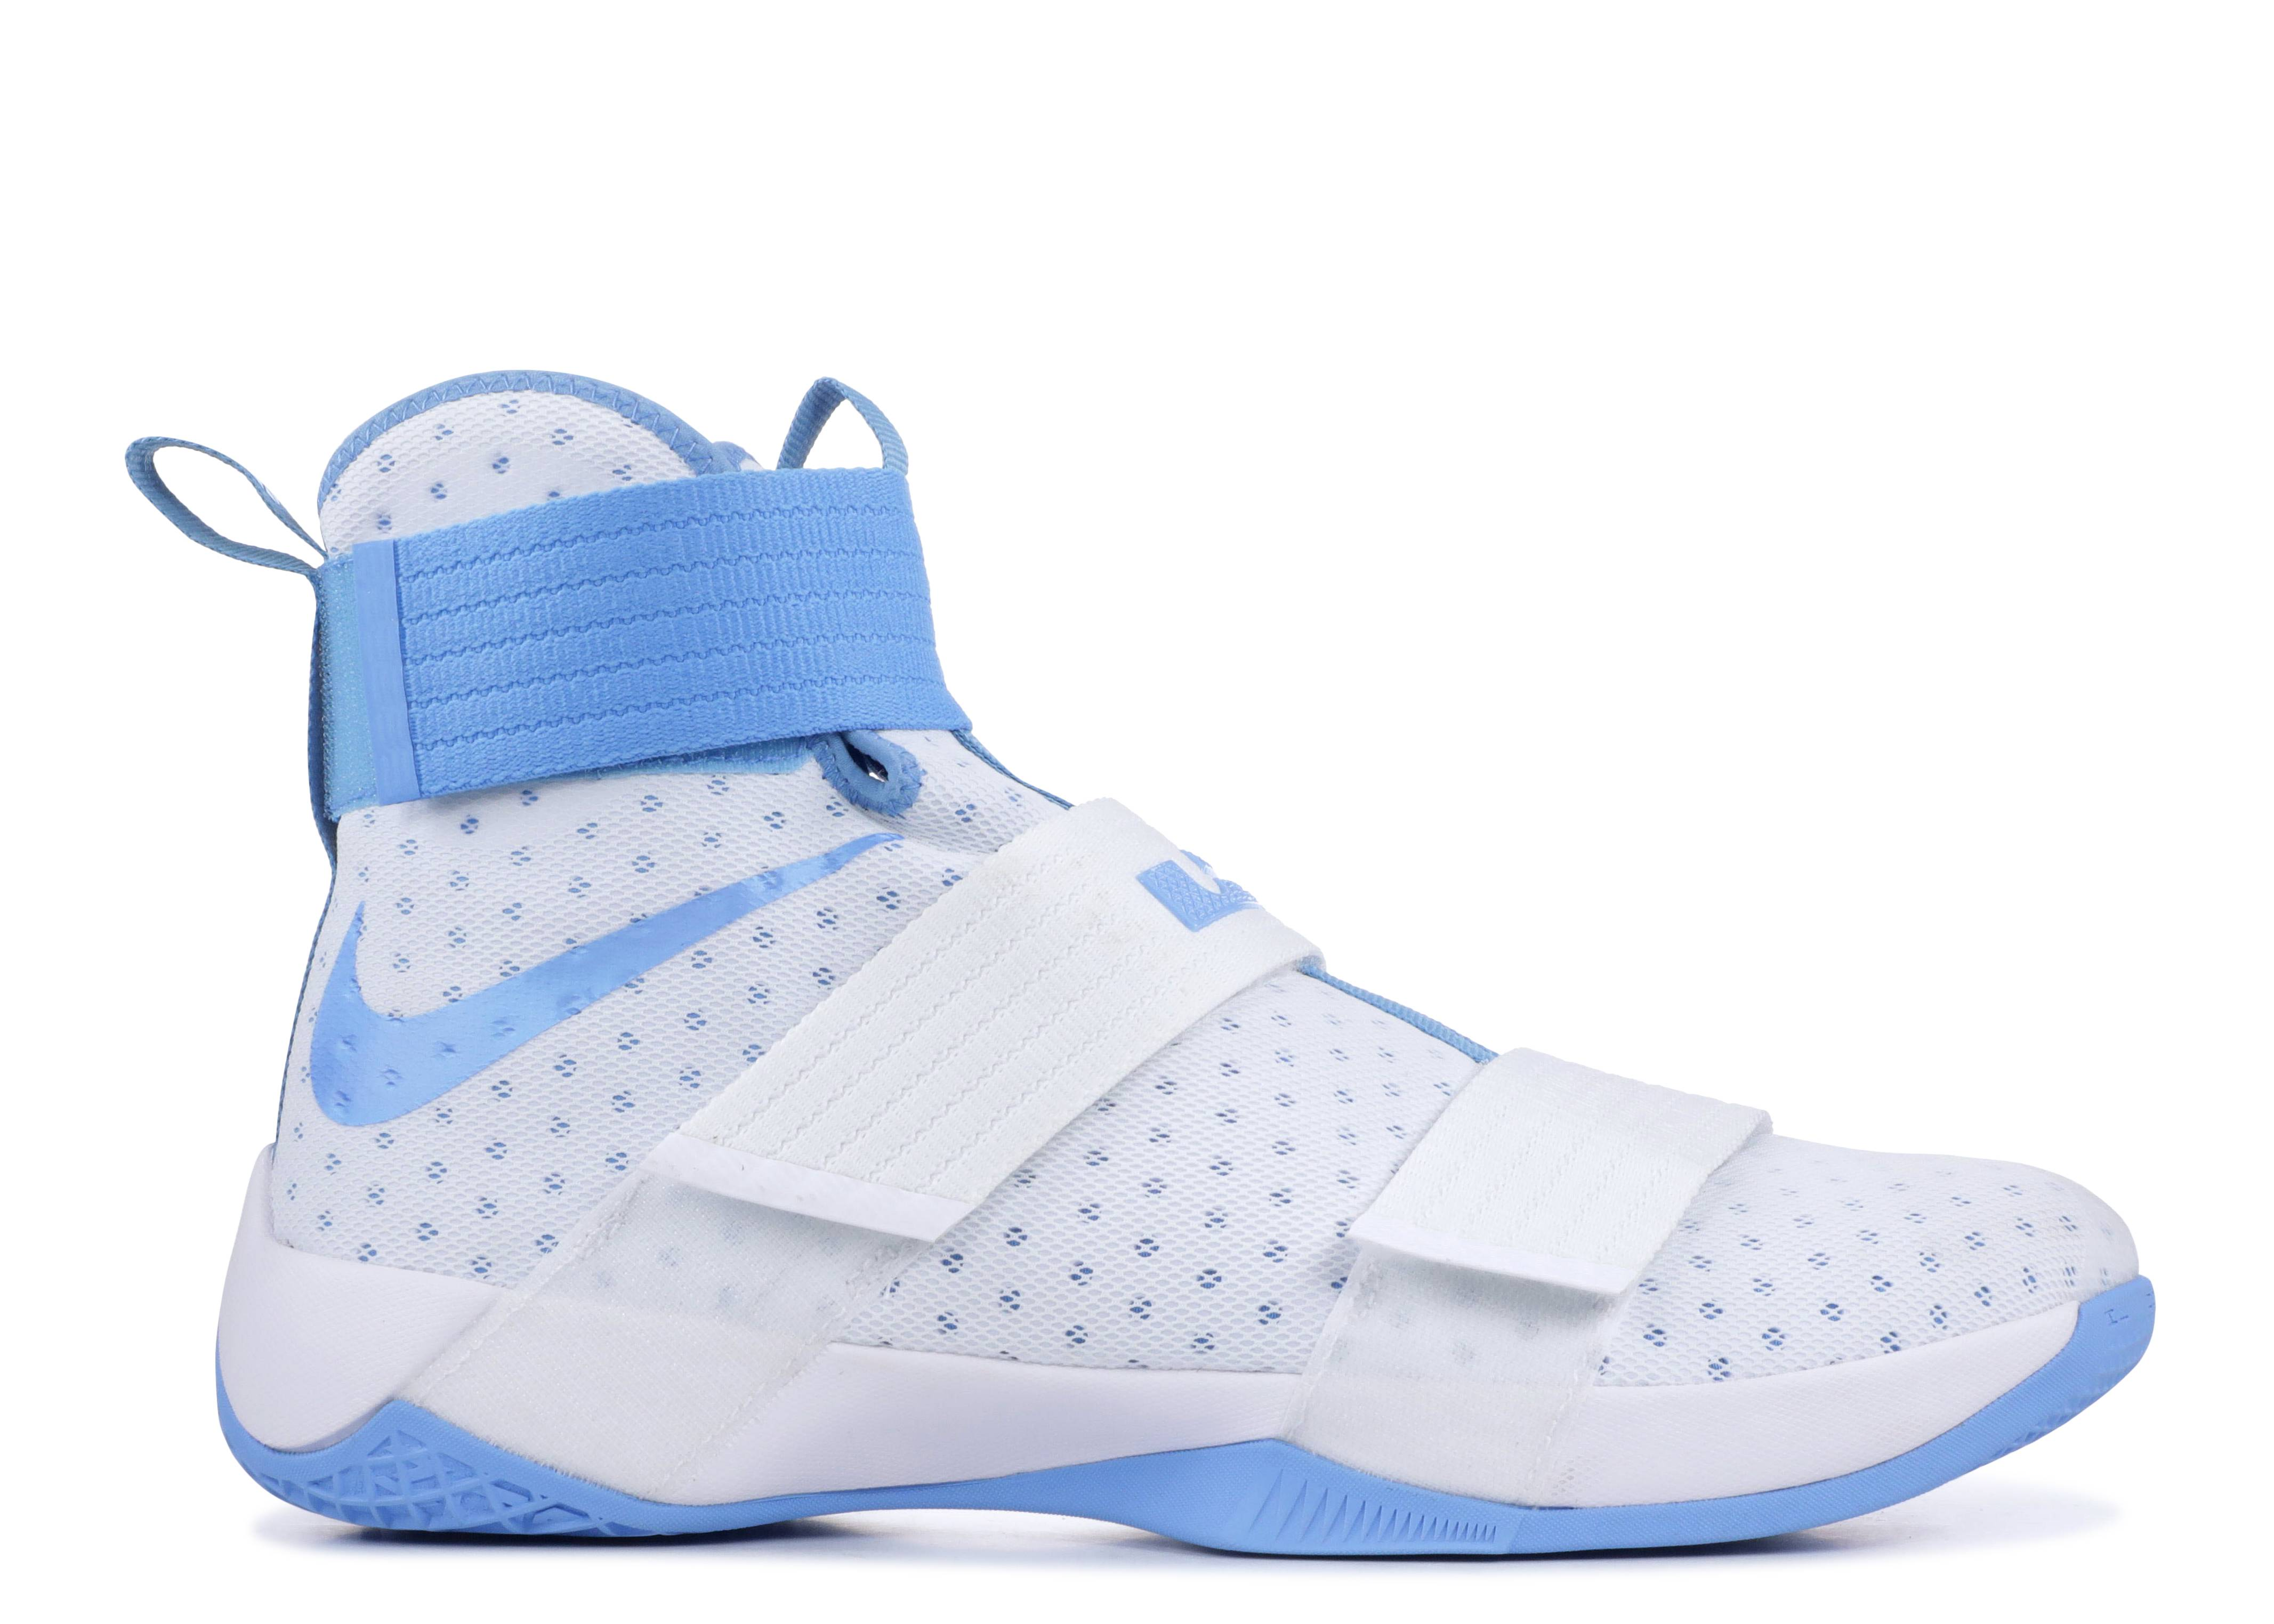 check out 4db81 08826 LeBron Soldier 10 'UNC Tarheels'